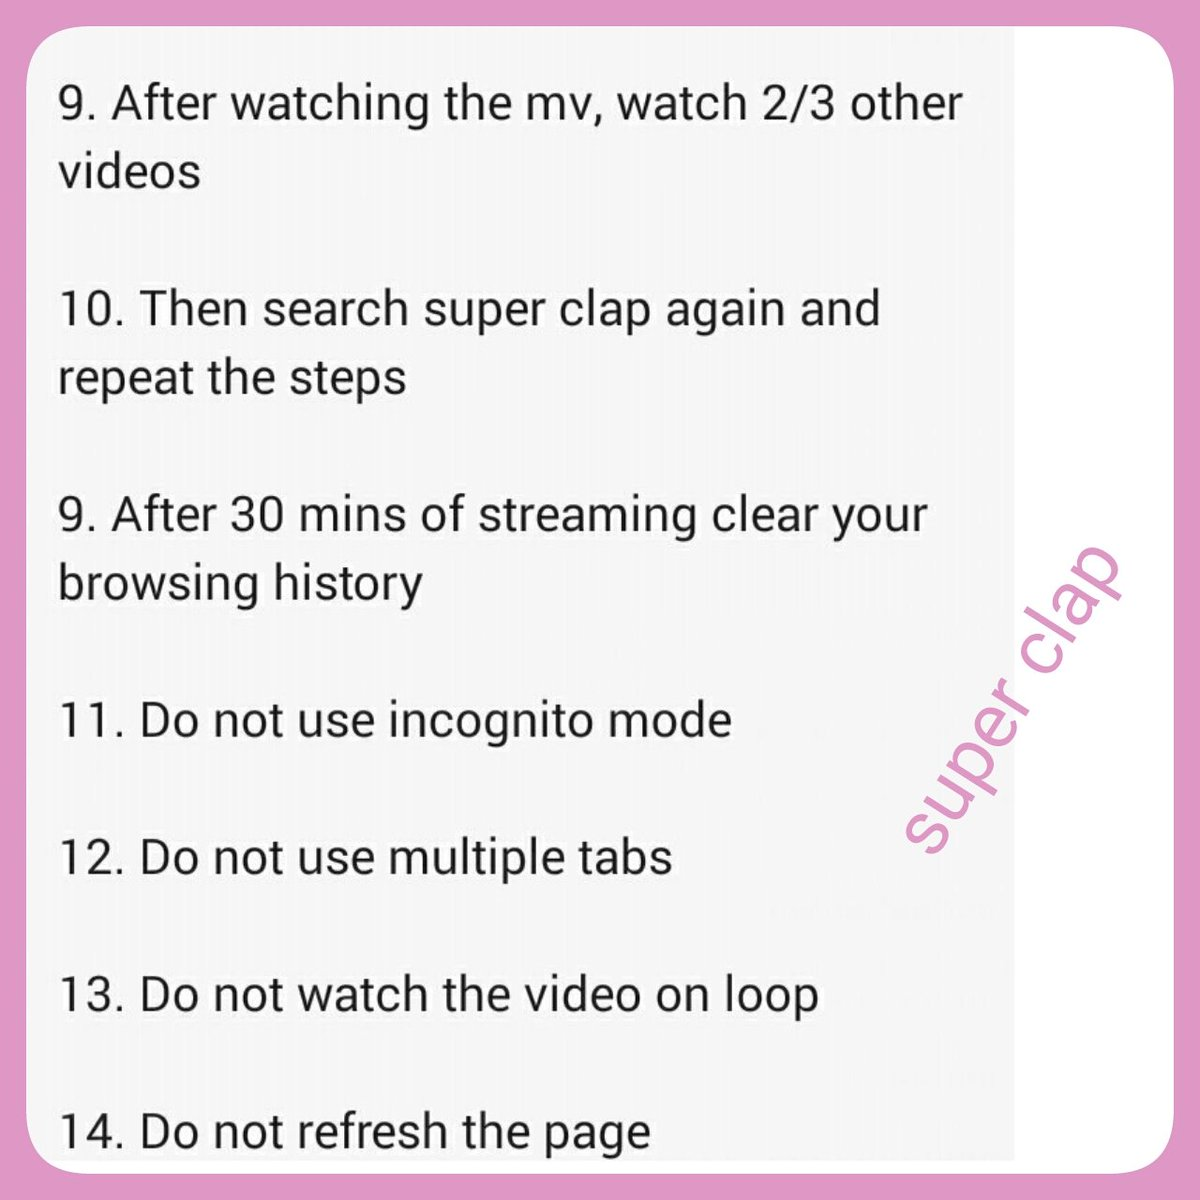 On Twitter How To Stream Super Clap On Youtube Properly Ps Remember To Login To All Your Youtube Acc And Leave A Like On The Mv But You Should Logout And